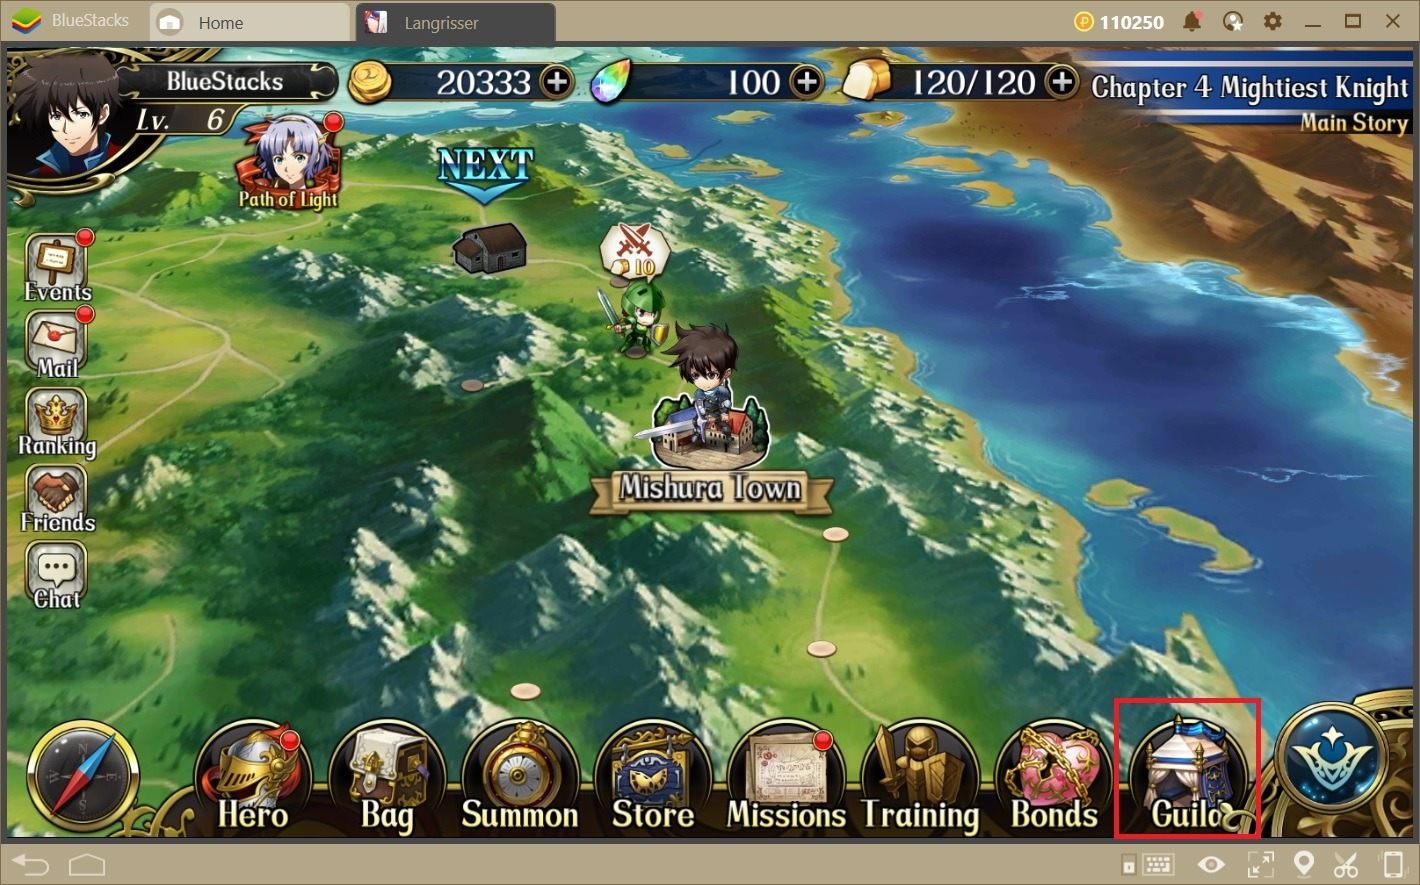 Langrisser on BlueStacks—Simple and Comfortable